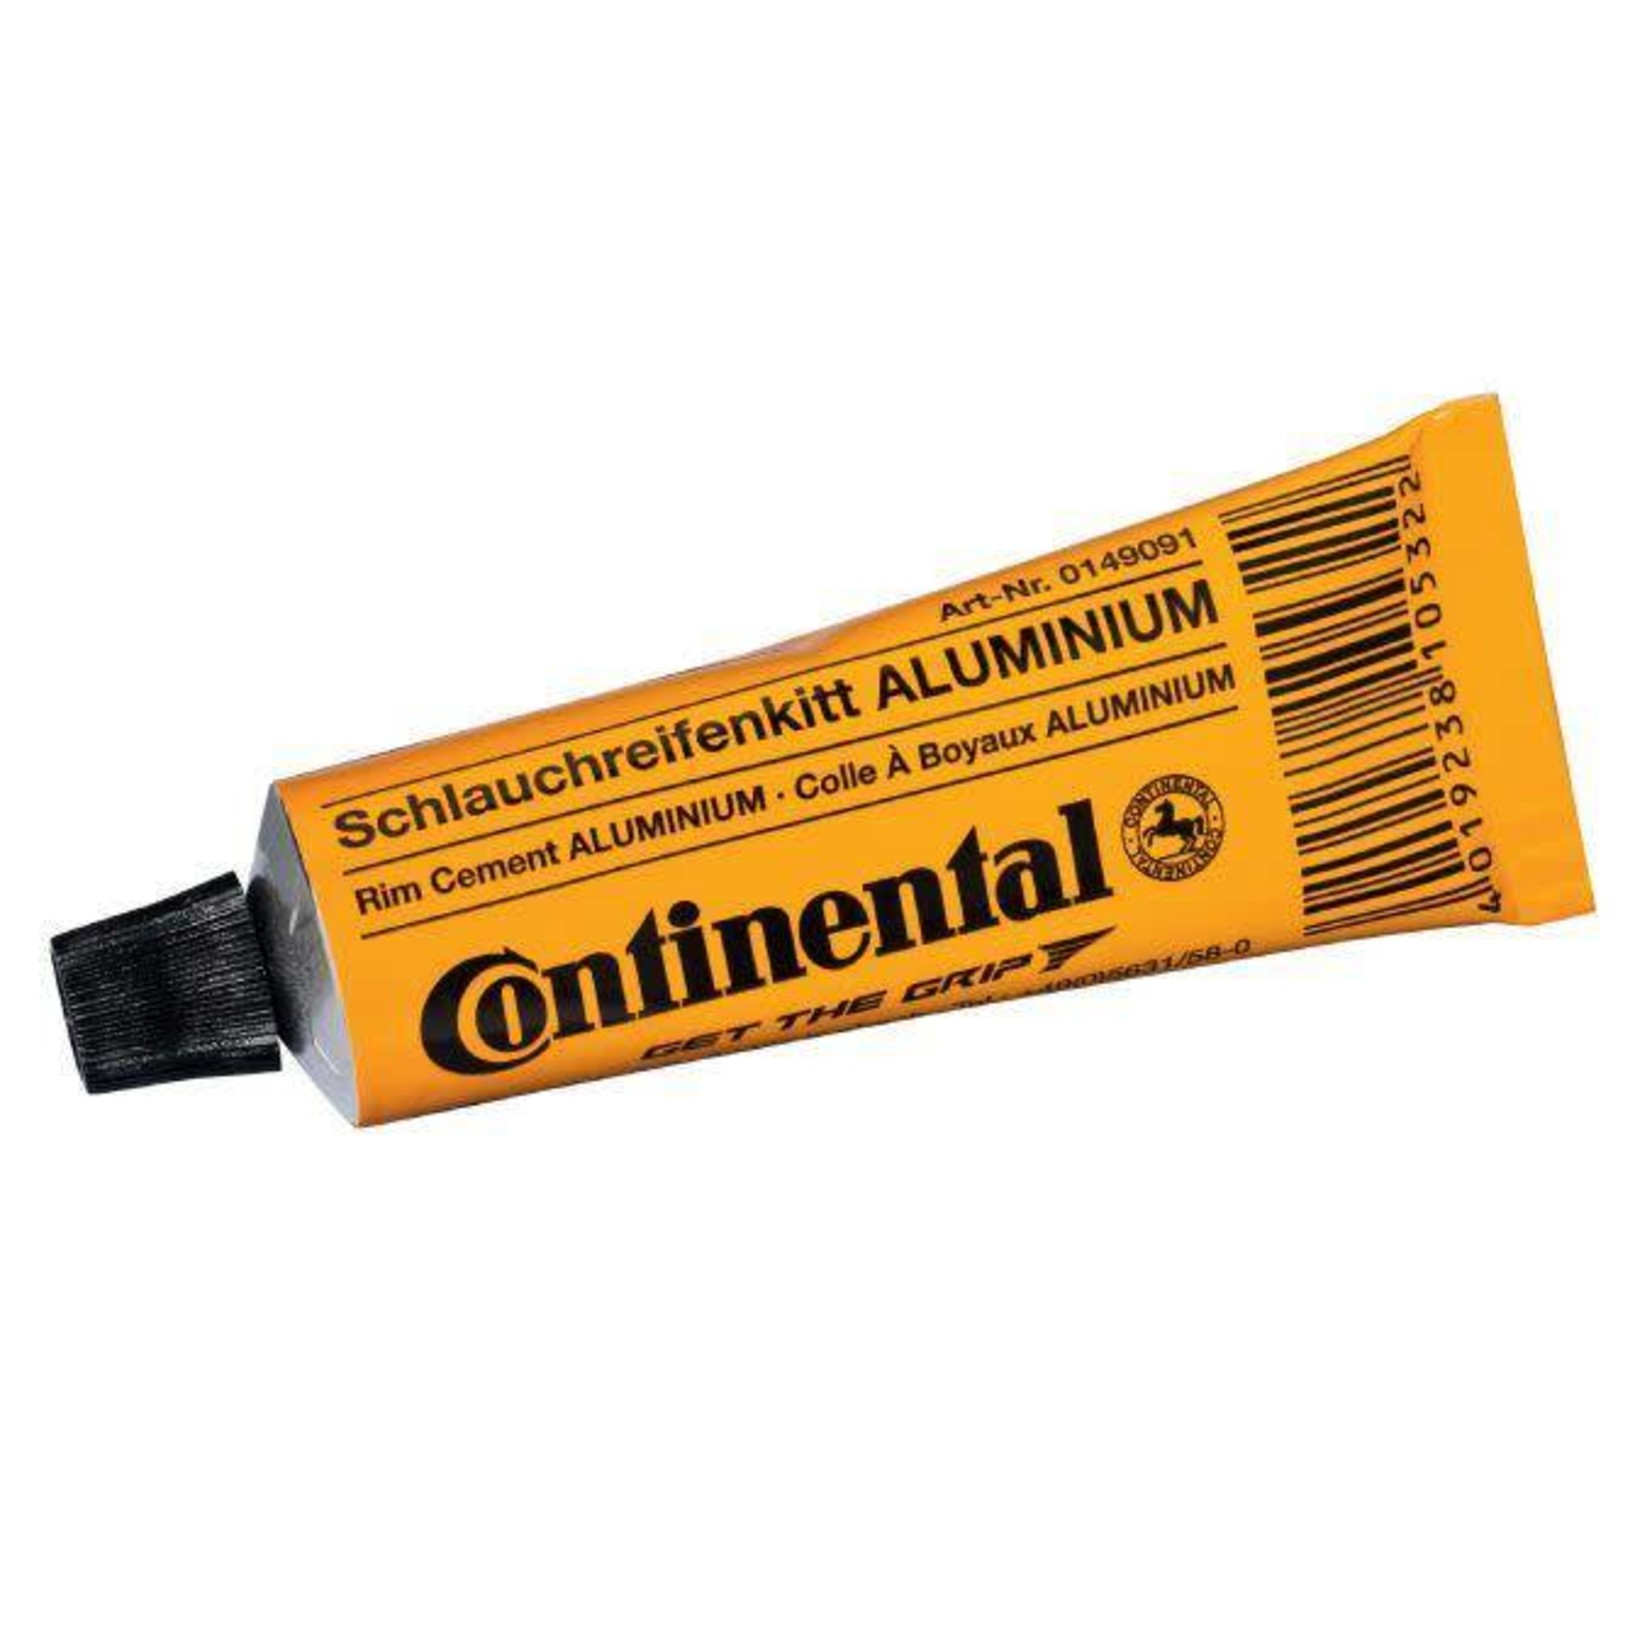 Continental CONTINENTAL TUBULAR CEMENT FOR ALLOY RIMS 25g